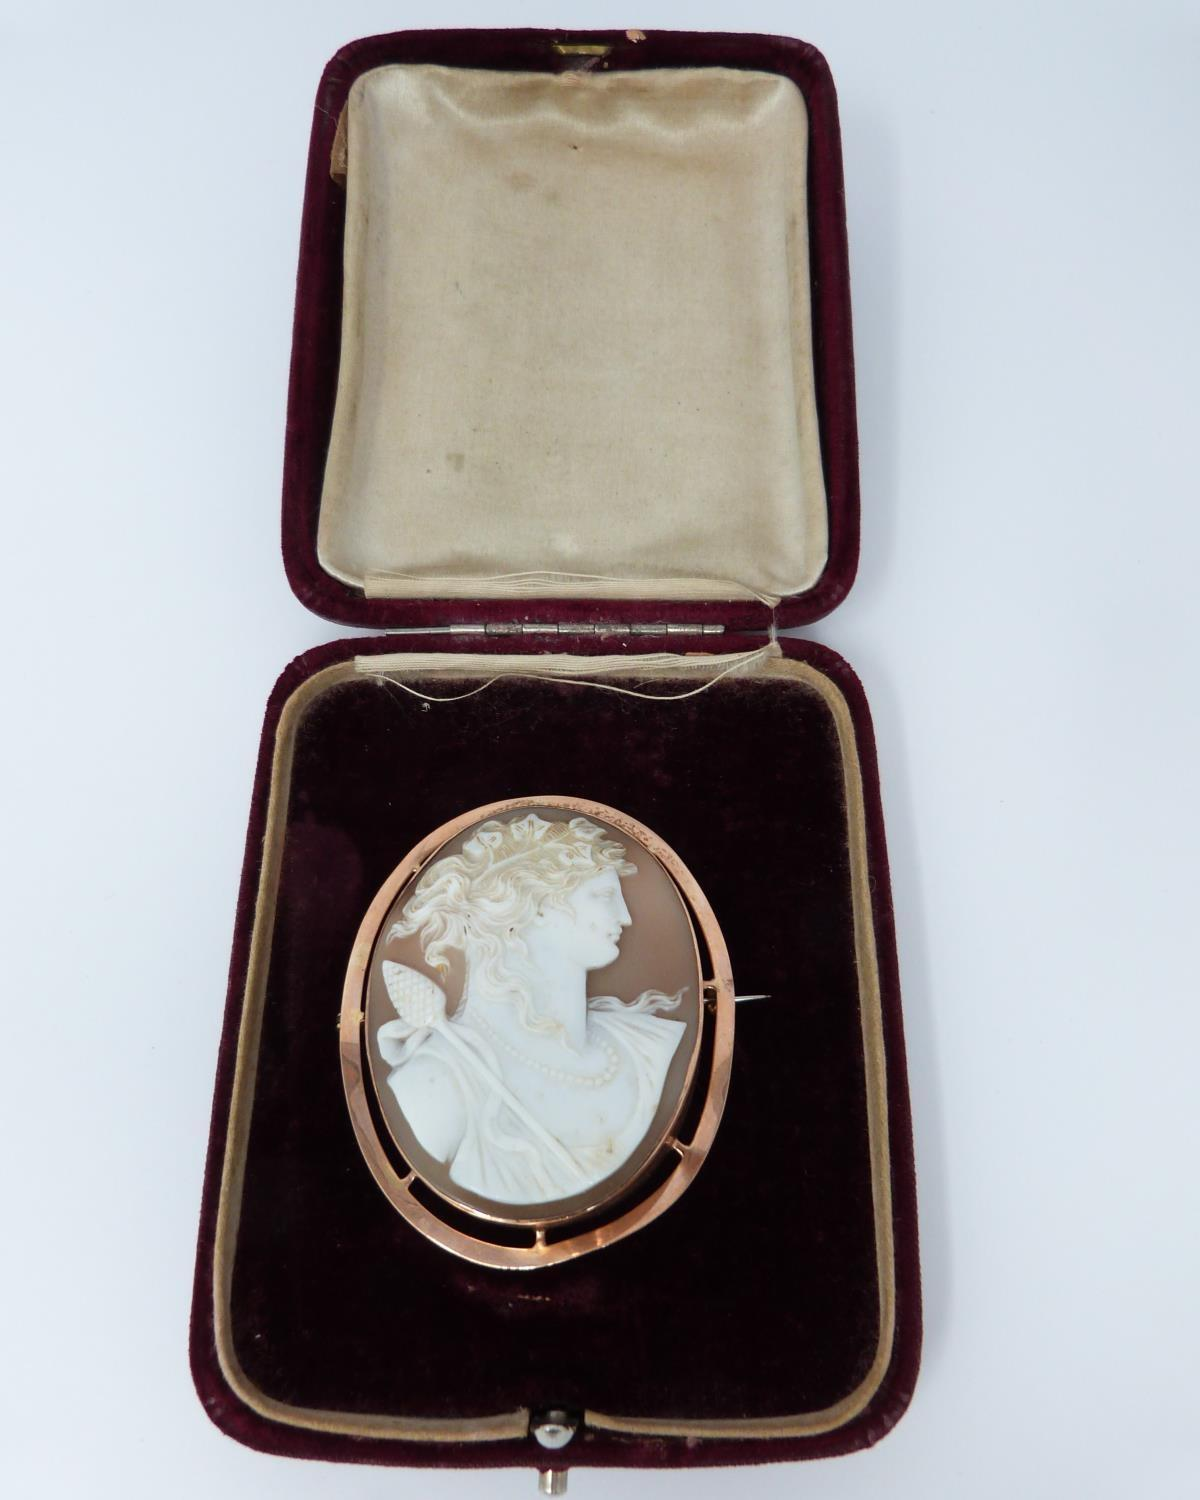 A 9ct Rose gold shell cameo of Dionysis side profile, makers mark AW, 9ct gold mark, he is